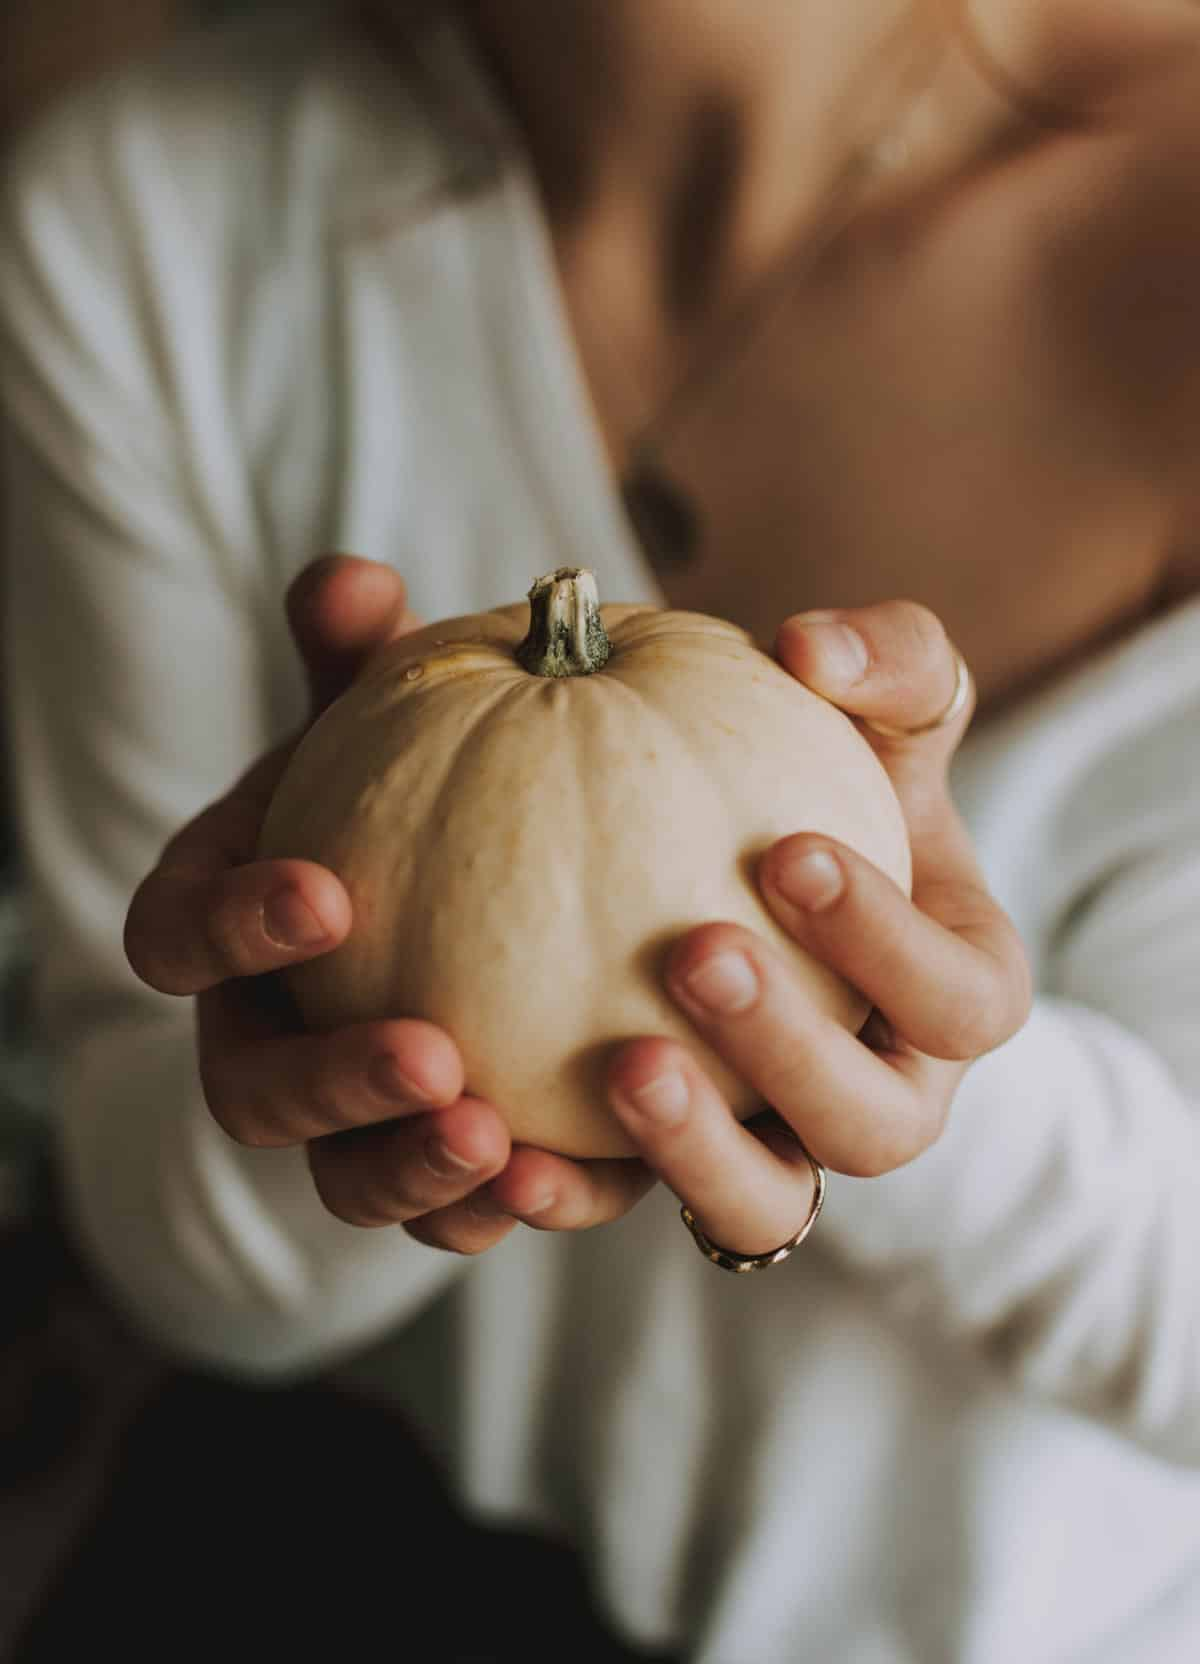 Woman in white sweater holding  a small white pumpkin.